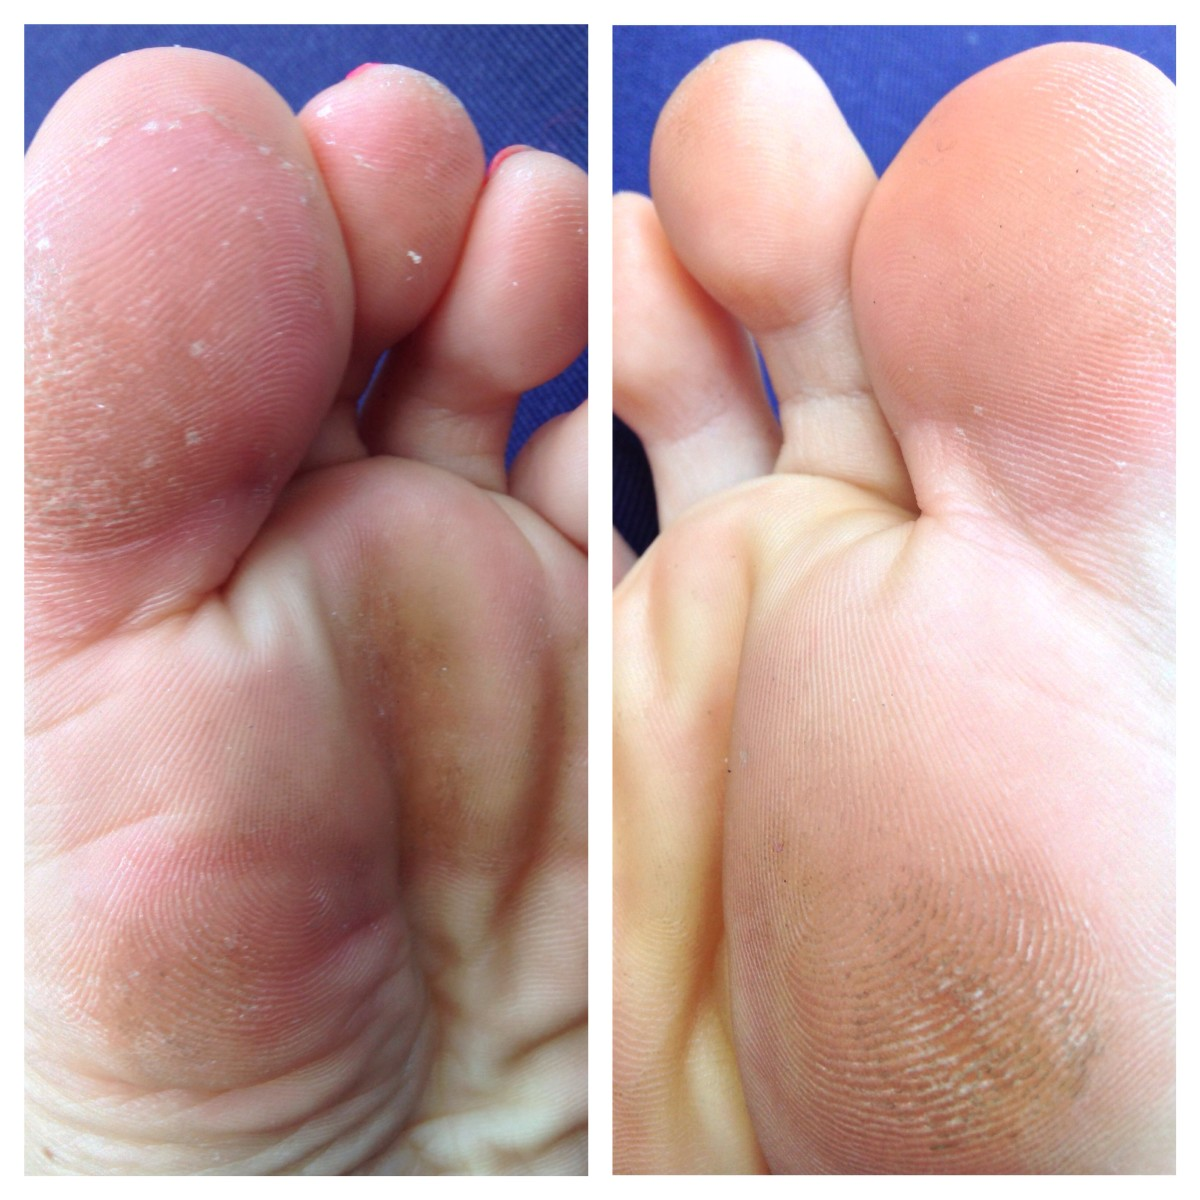 Mild Athlete's Foot and Athlete's Foot Free